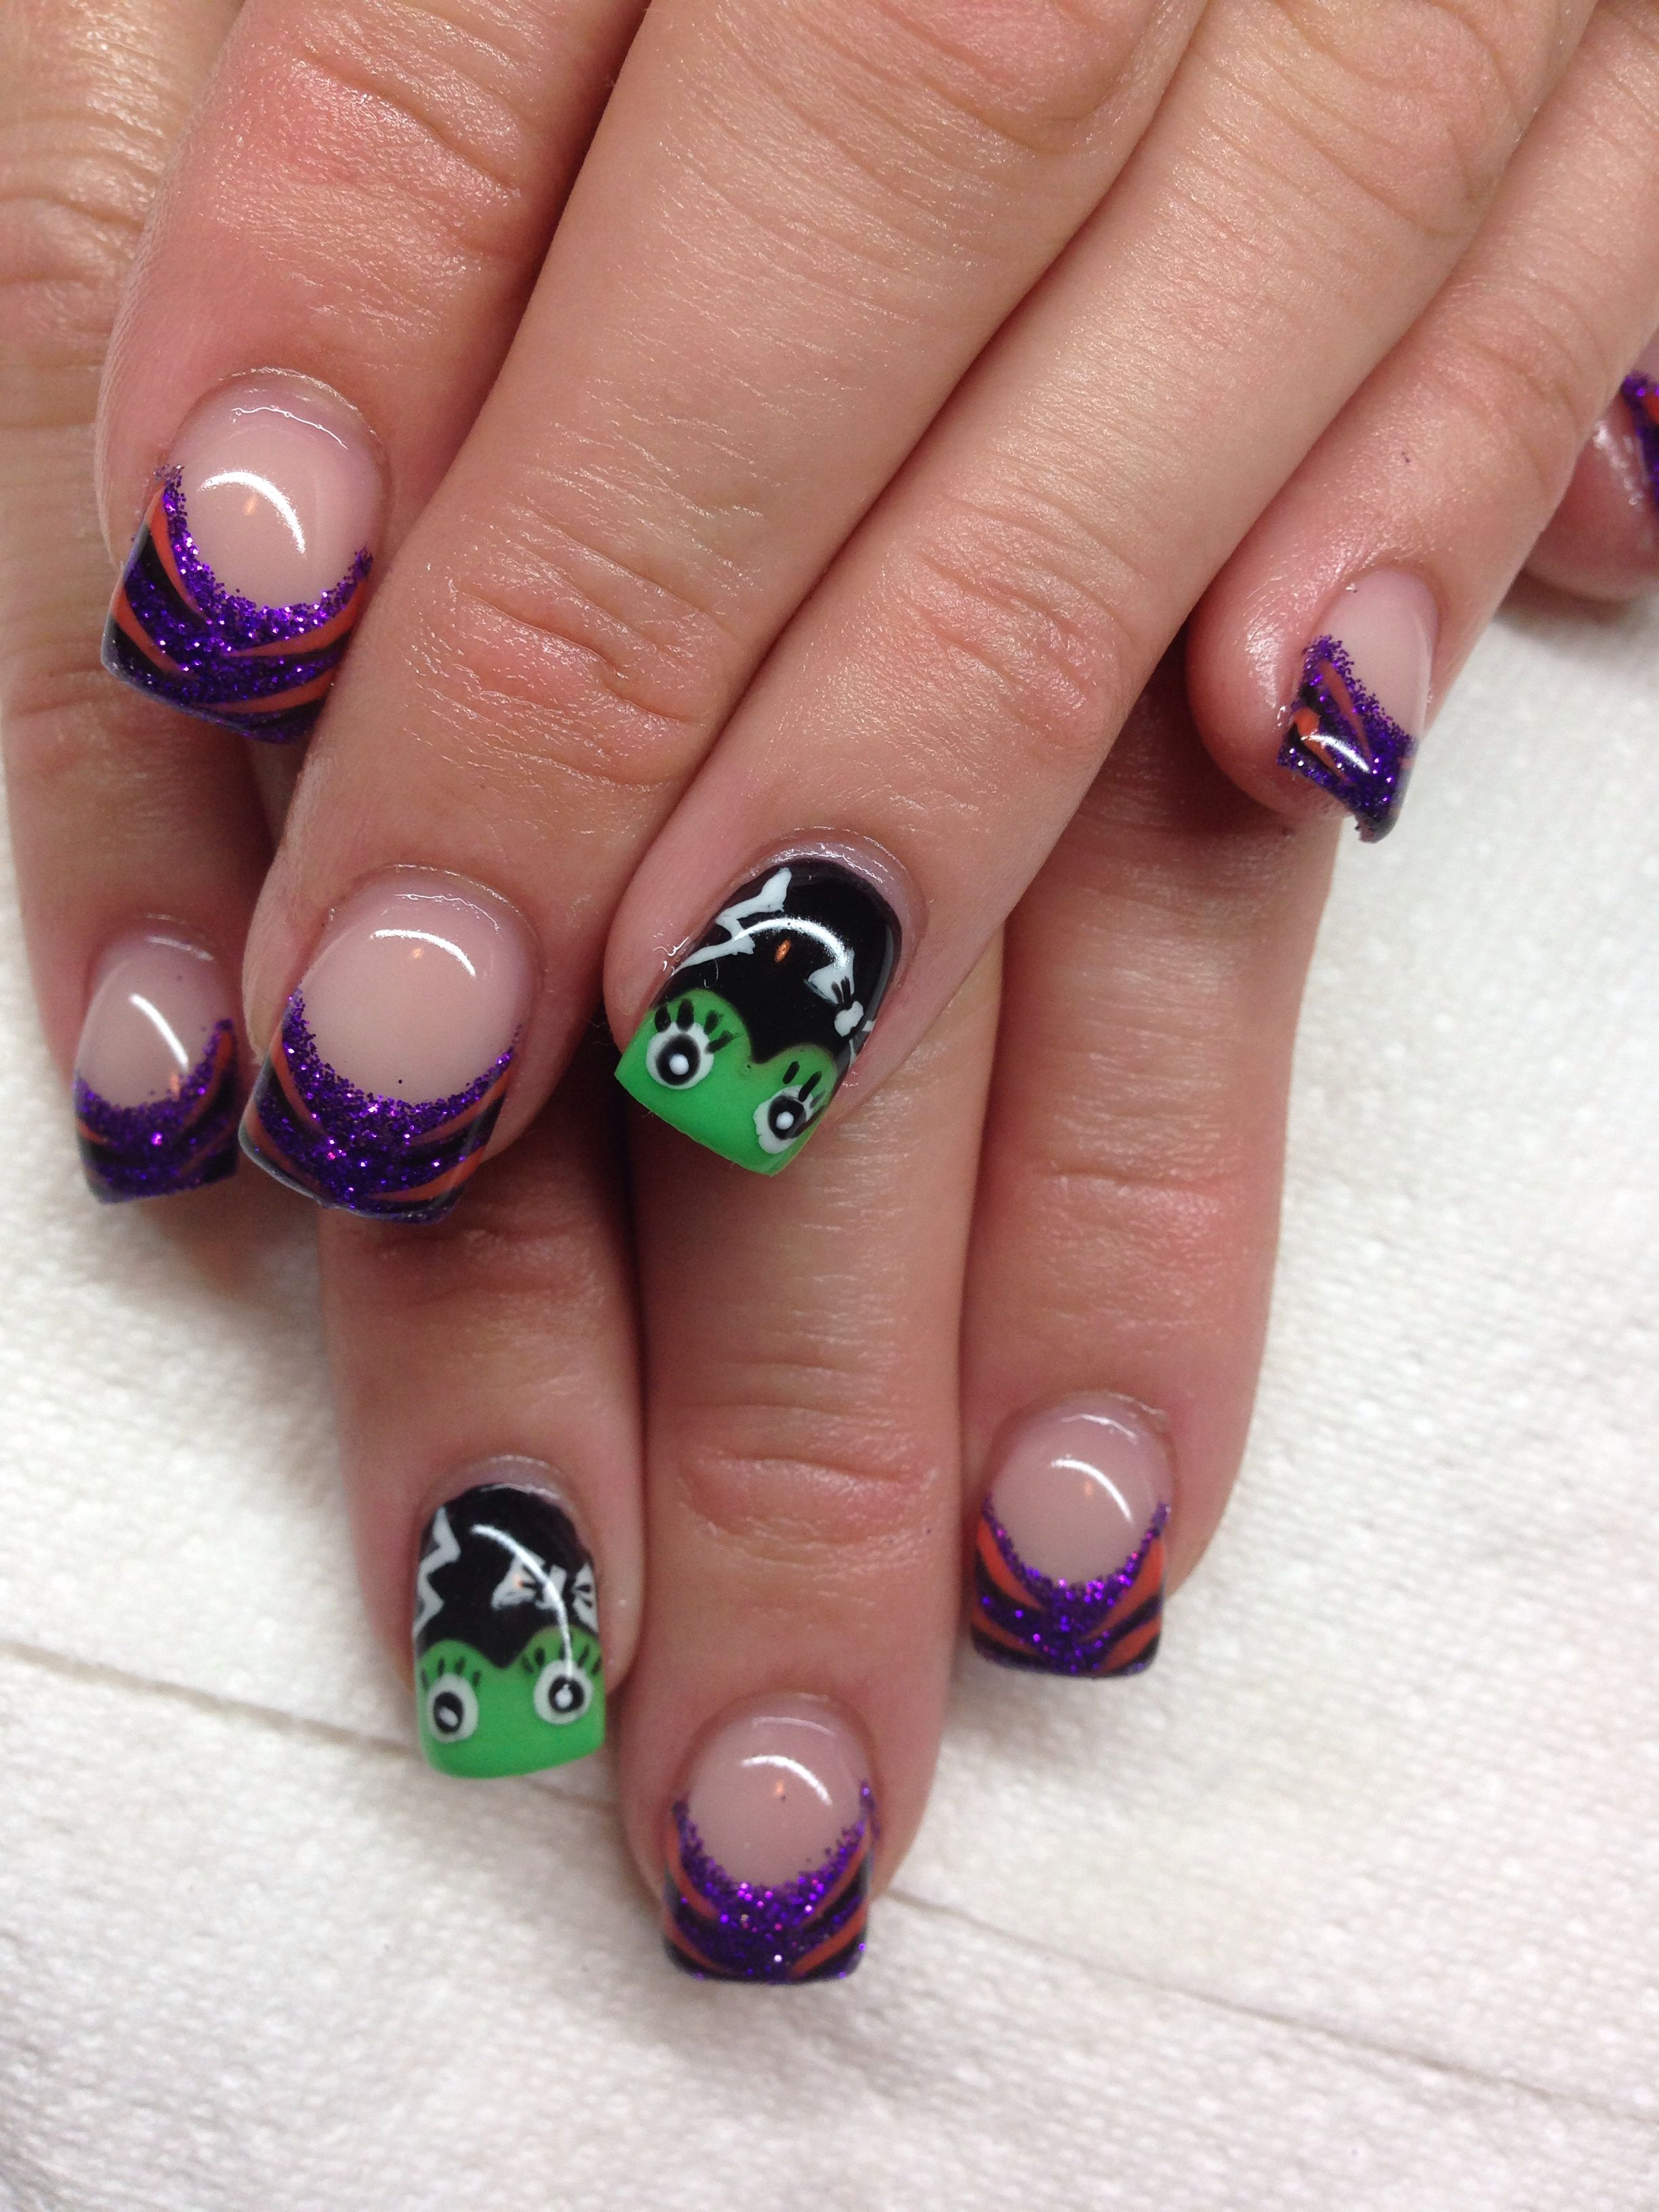 Gel nails for Halloween with hand drawn design using gel By Melissa Fox